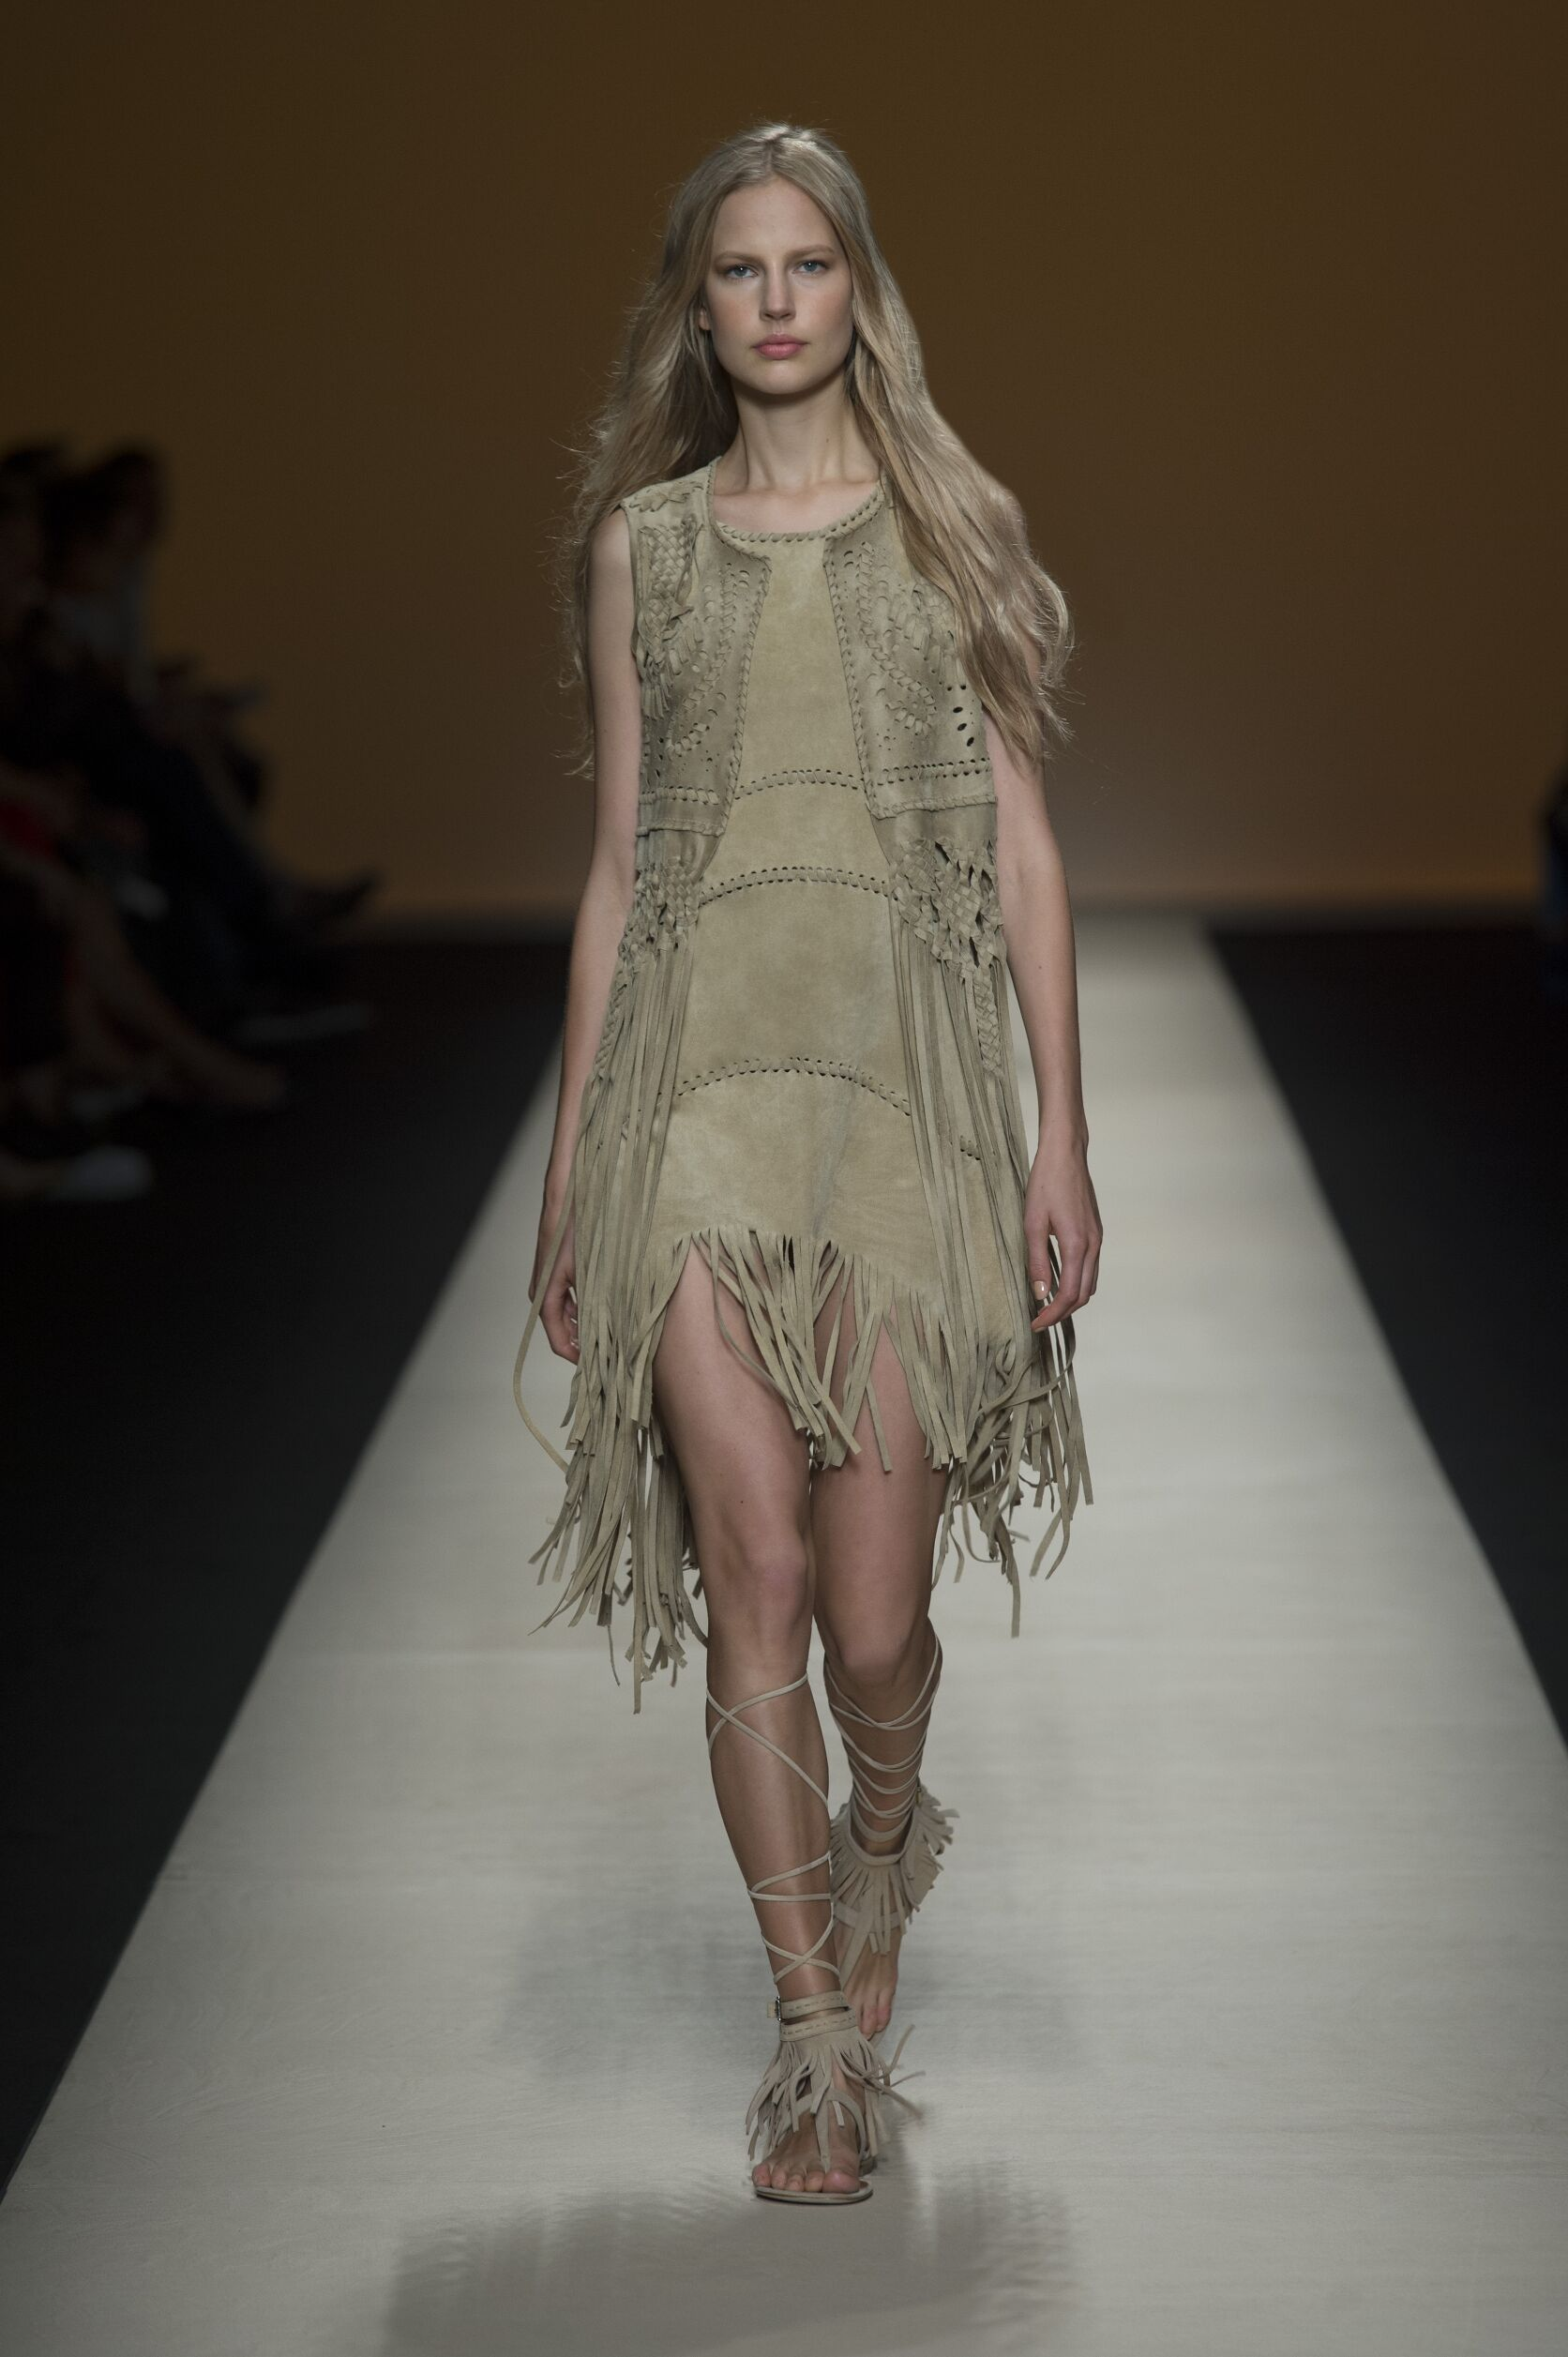 2015 Catwalk Alberta Ferretti Woman Fashion Show Summer